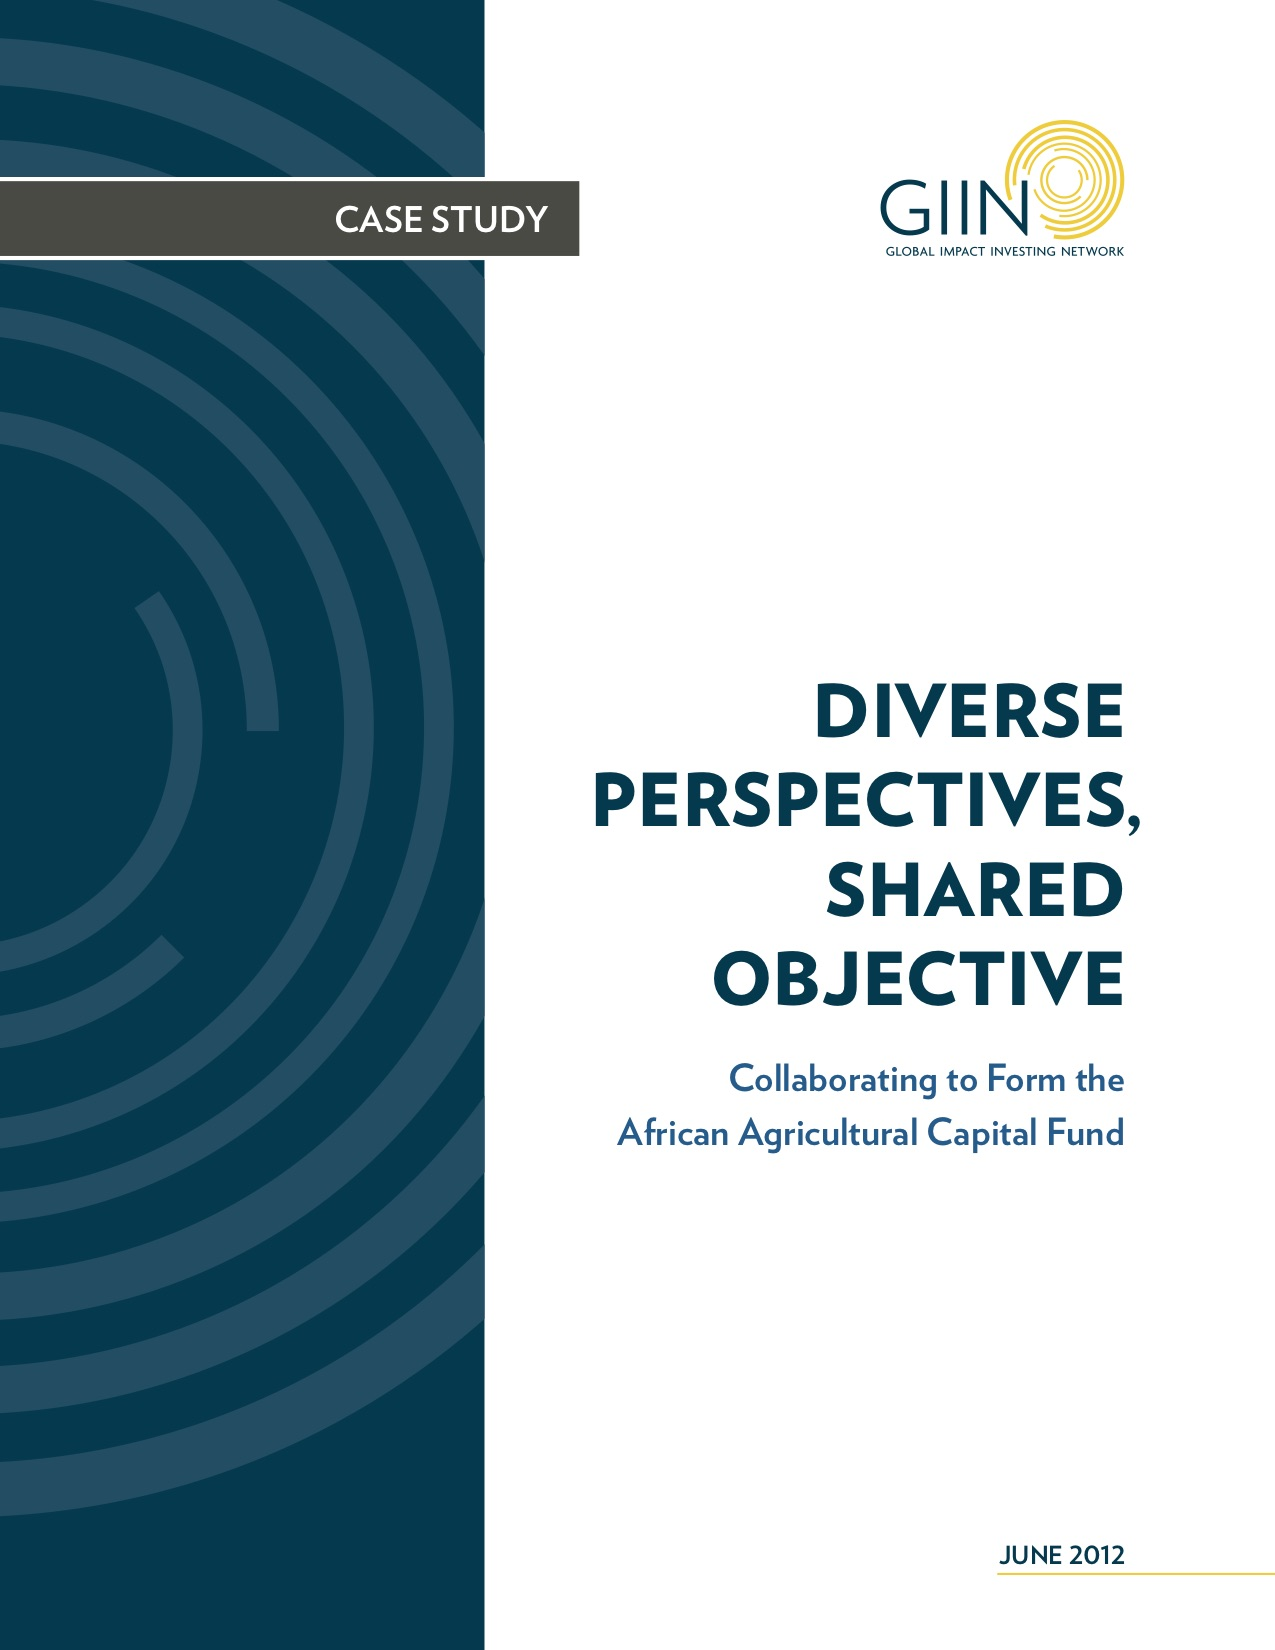 Diverse Perspectives, Shared Objective - Collaborating to Form the African Agricultural Capital Fund